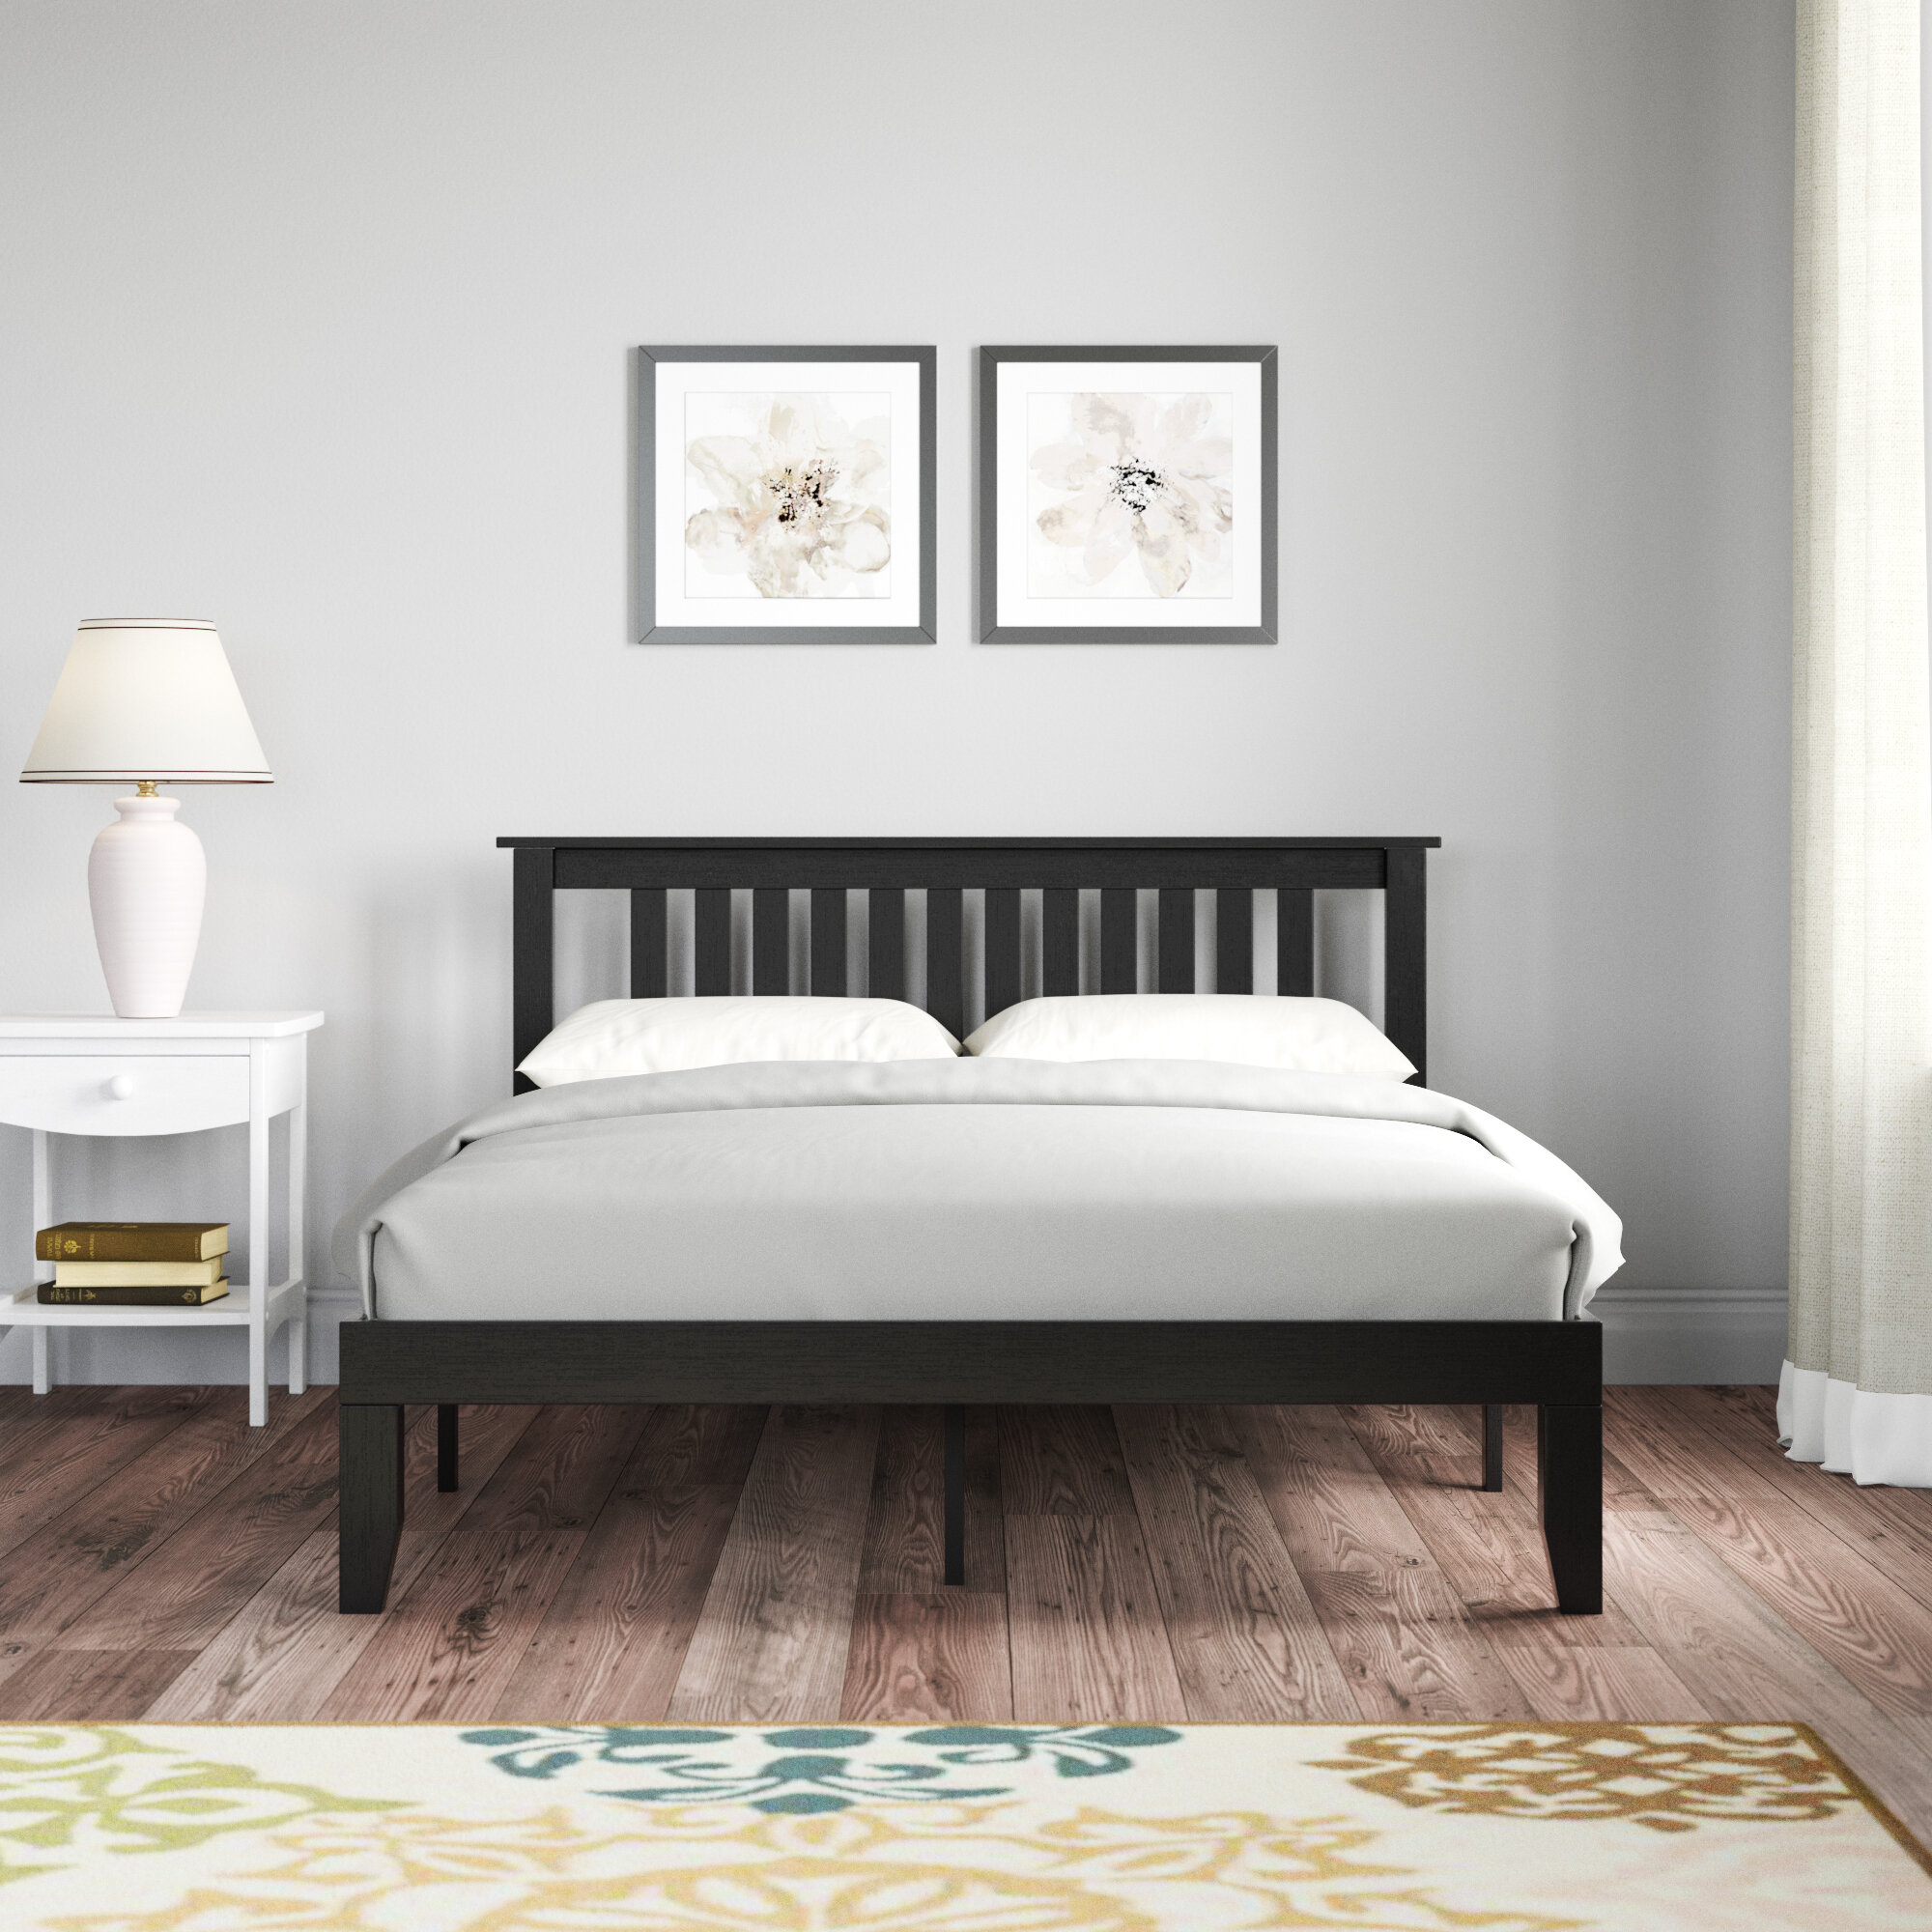 Travie Solid Wood Platform Bed With Panelled Headboard, Ebony Black